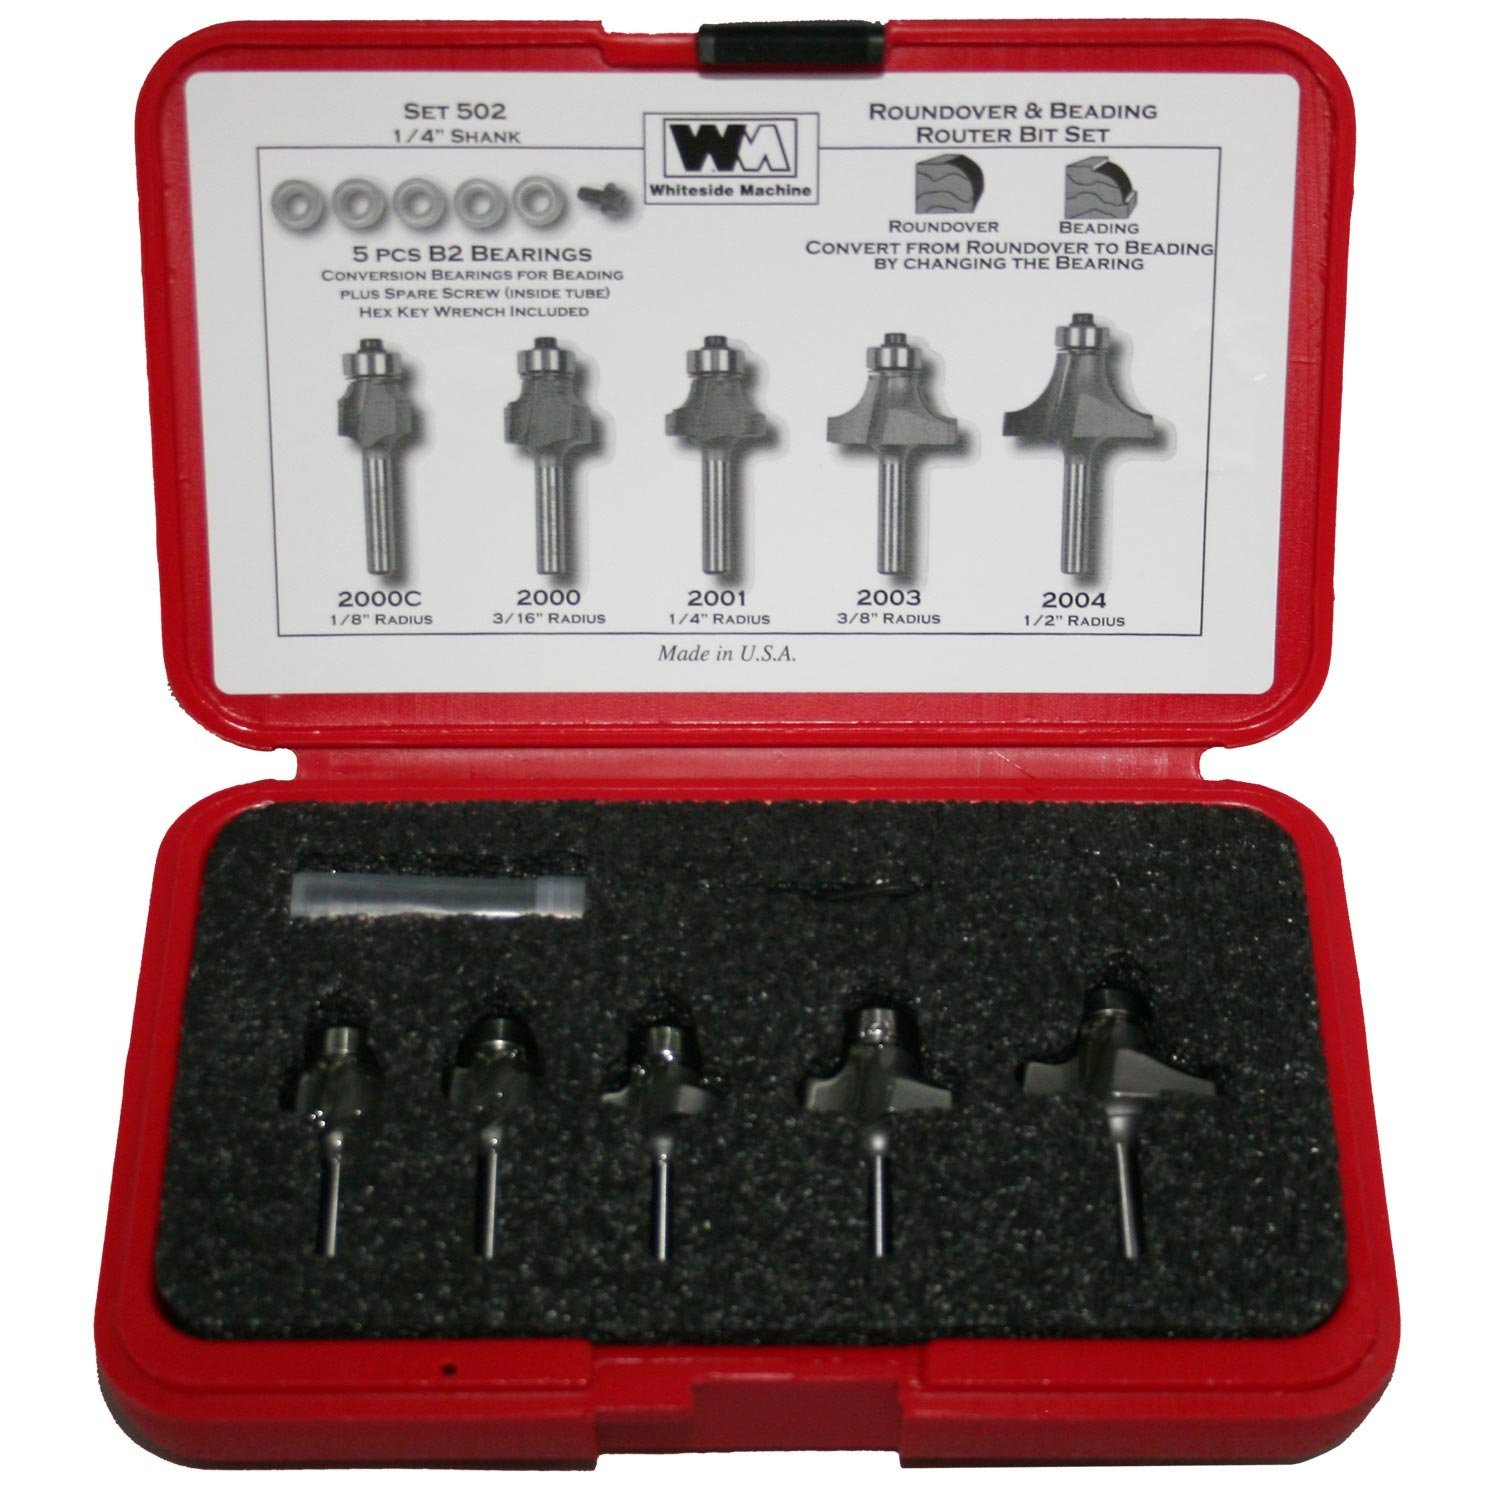 Whiteside Router Bits 502 Round Over and Beading Set with 1/4-Inch Shank